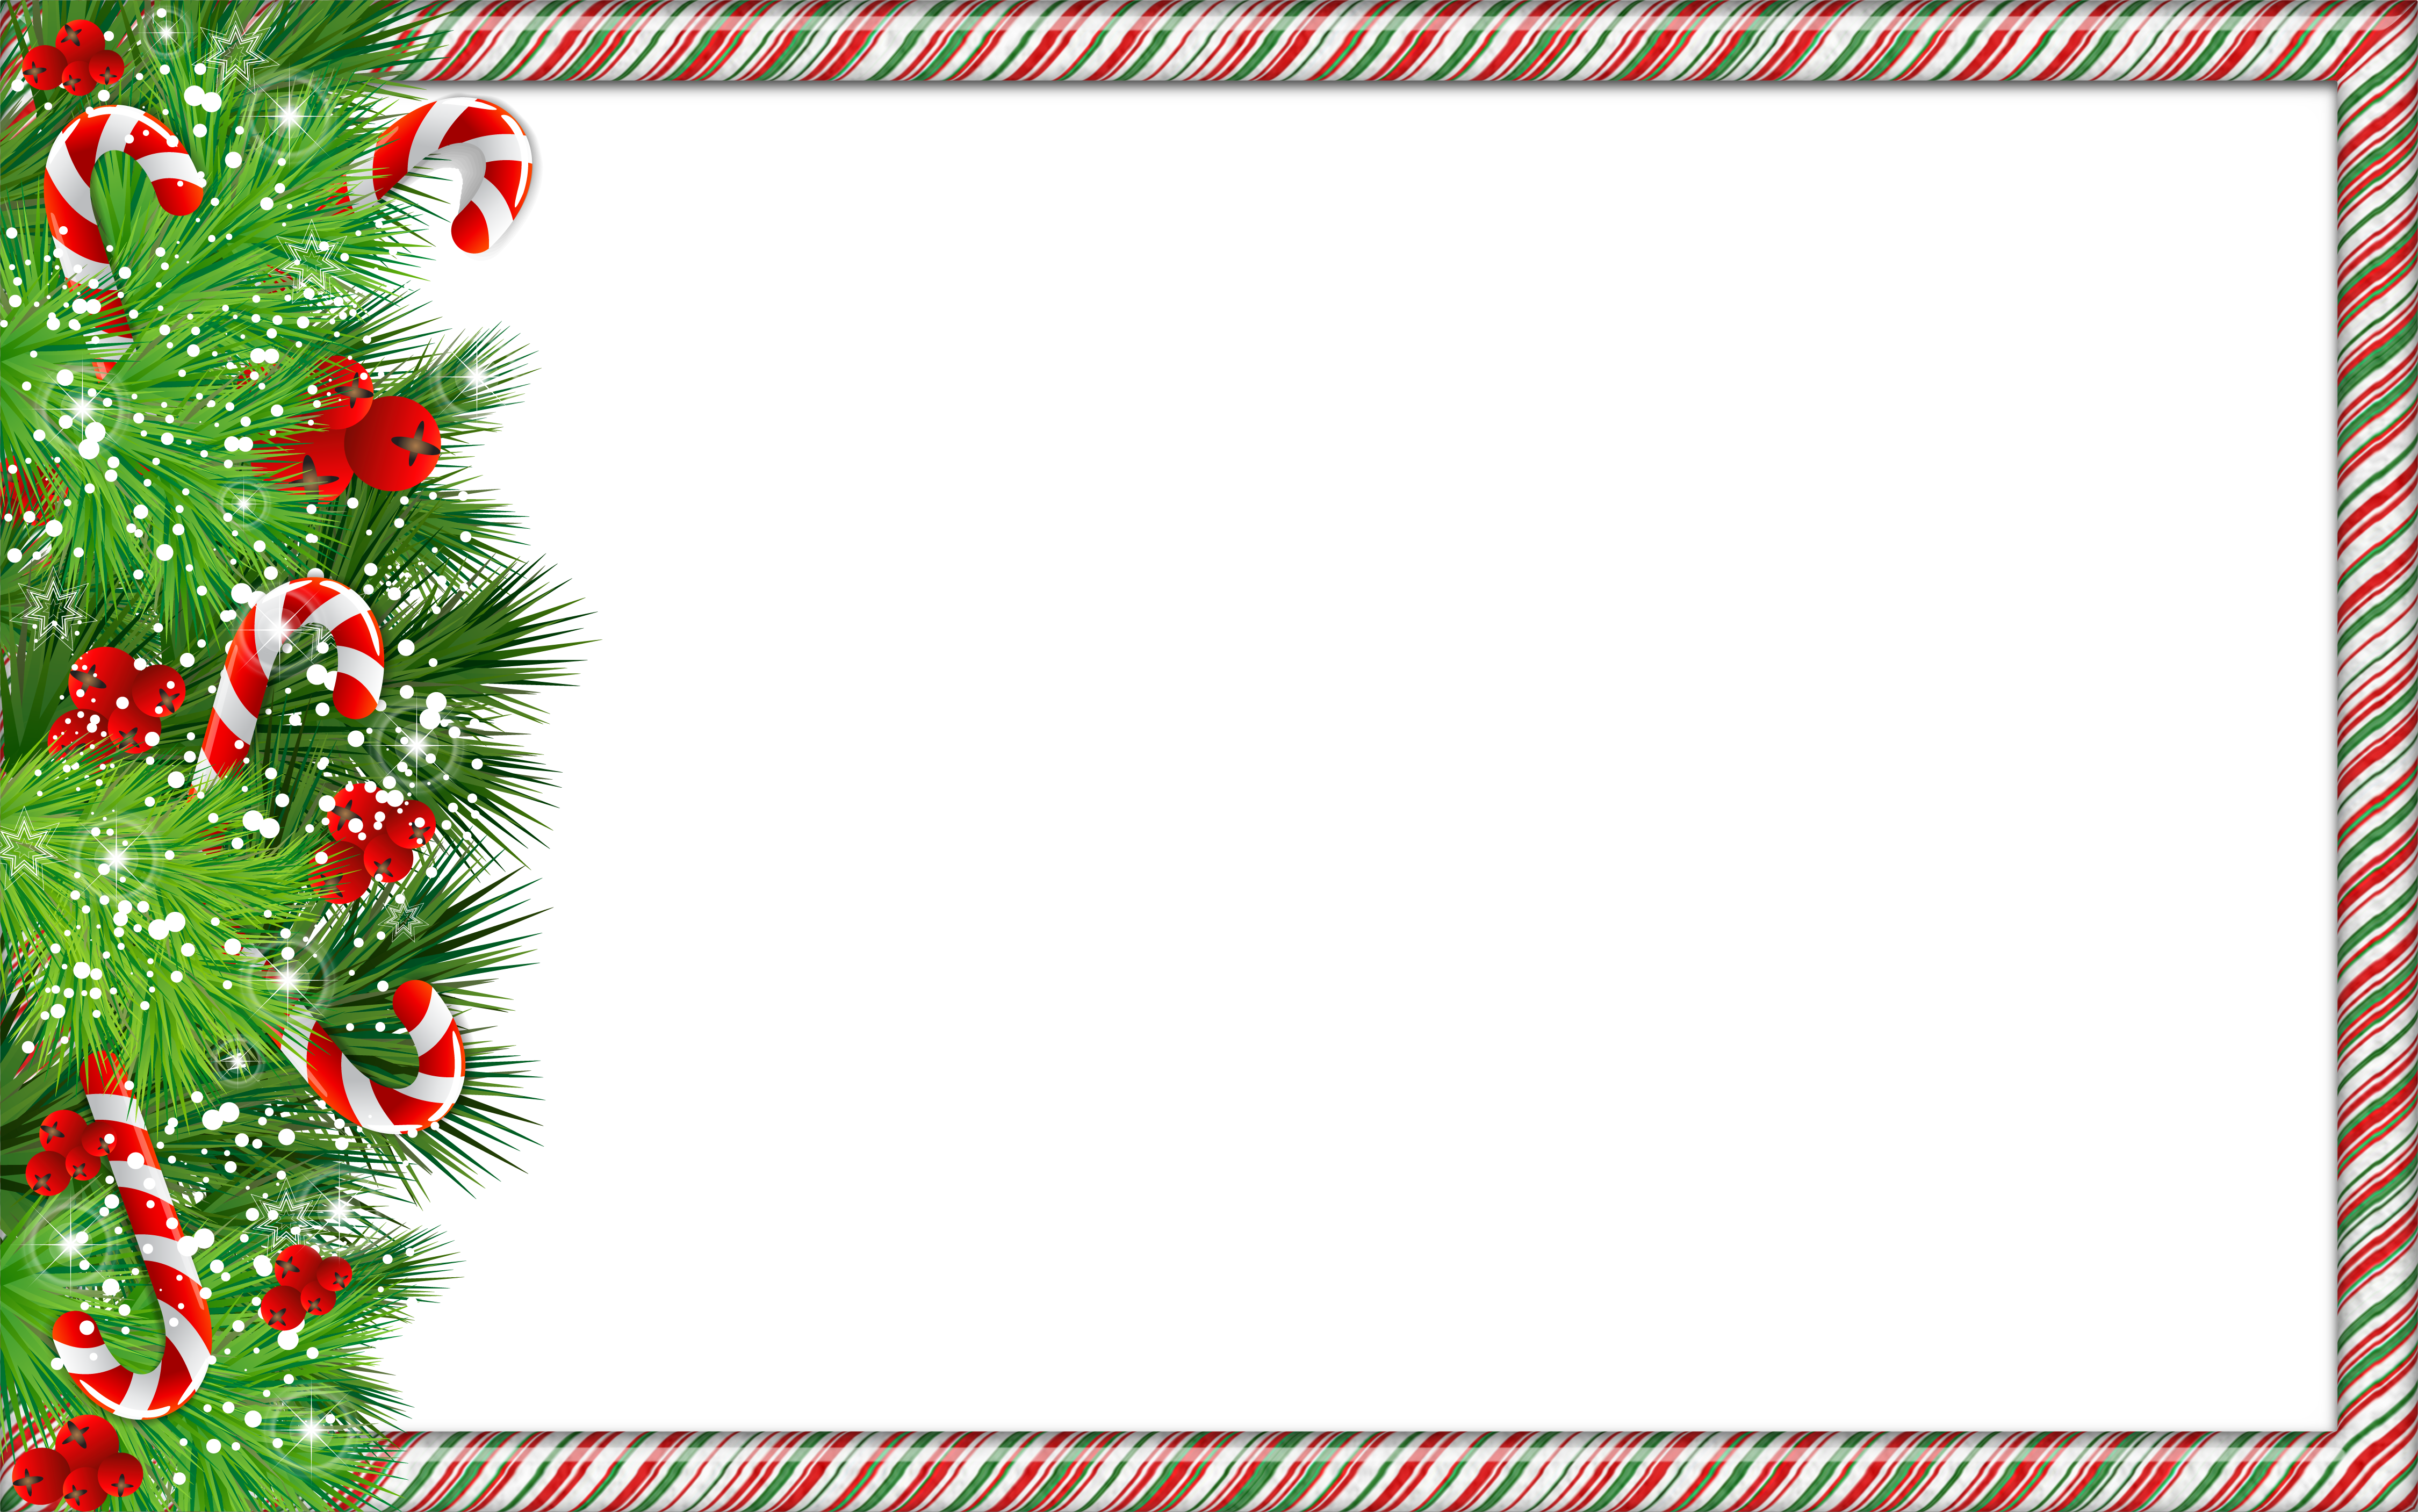 Candy cane border png. Christmas photo frame with